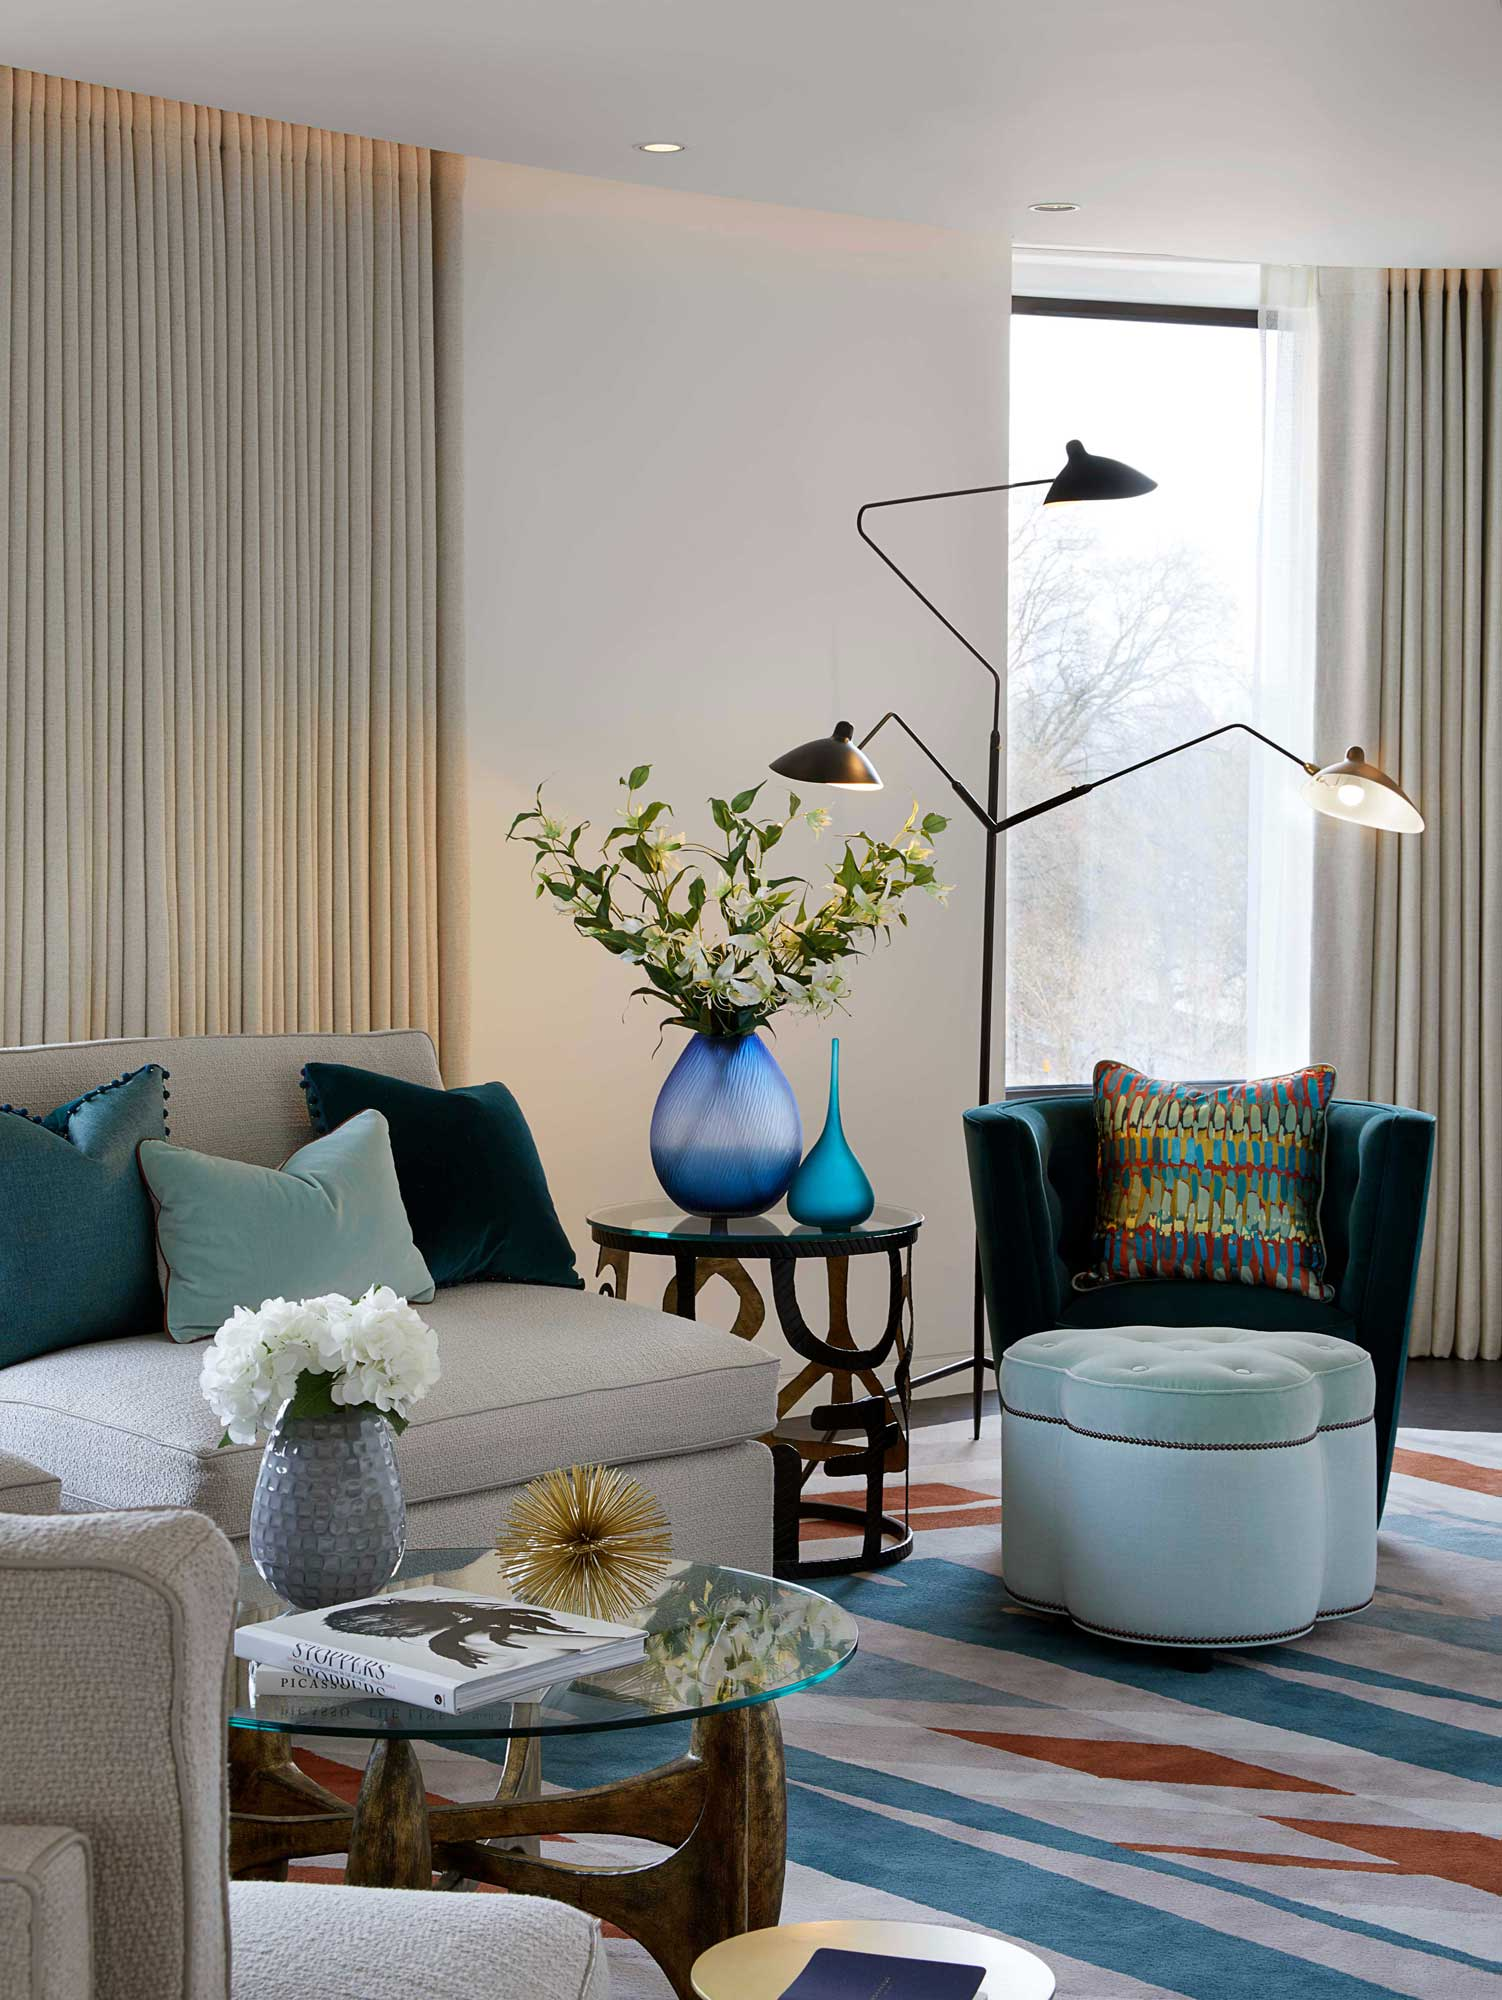 How Morpheus London Brought the River Into this Westminster Apartment westminster apartment How Morpheus London Brought the River Into this Westminster Apartment How Morpheus London Brought the River Into this Westminster Apartment 3